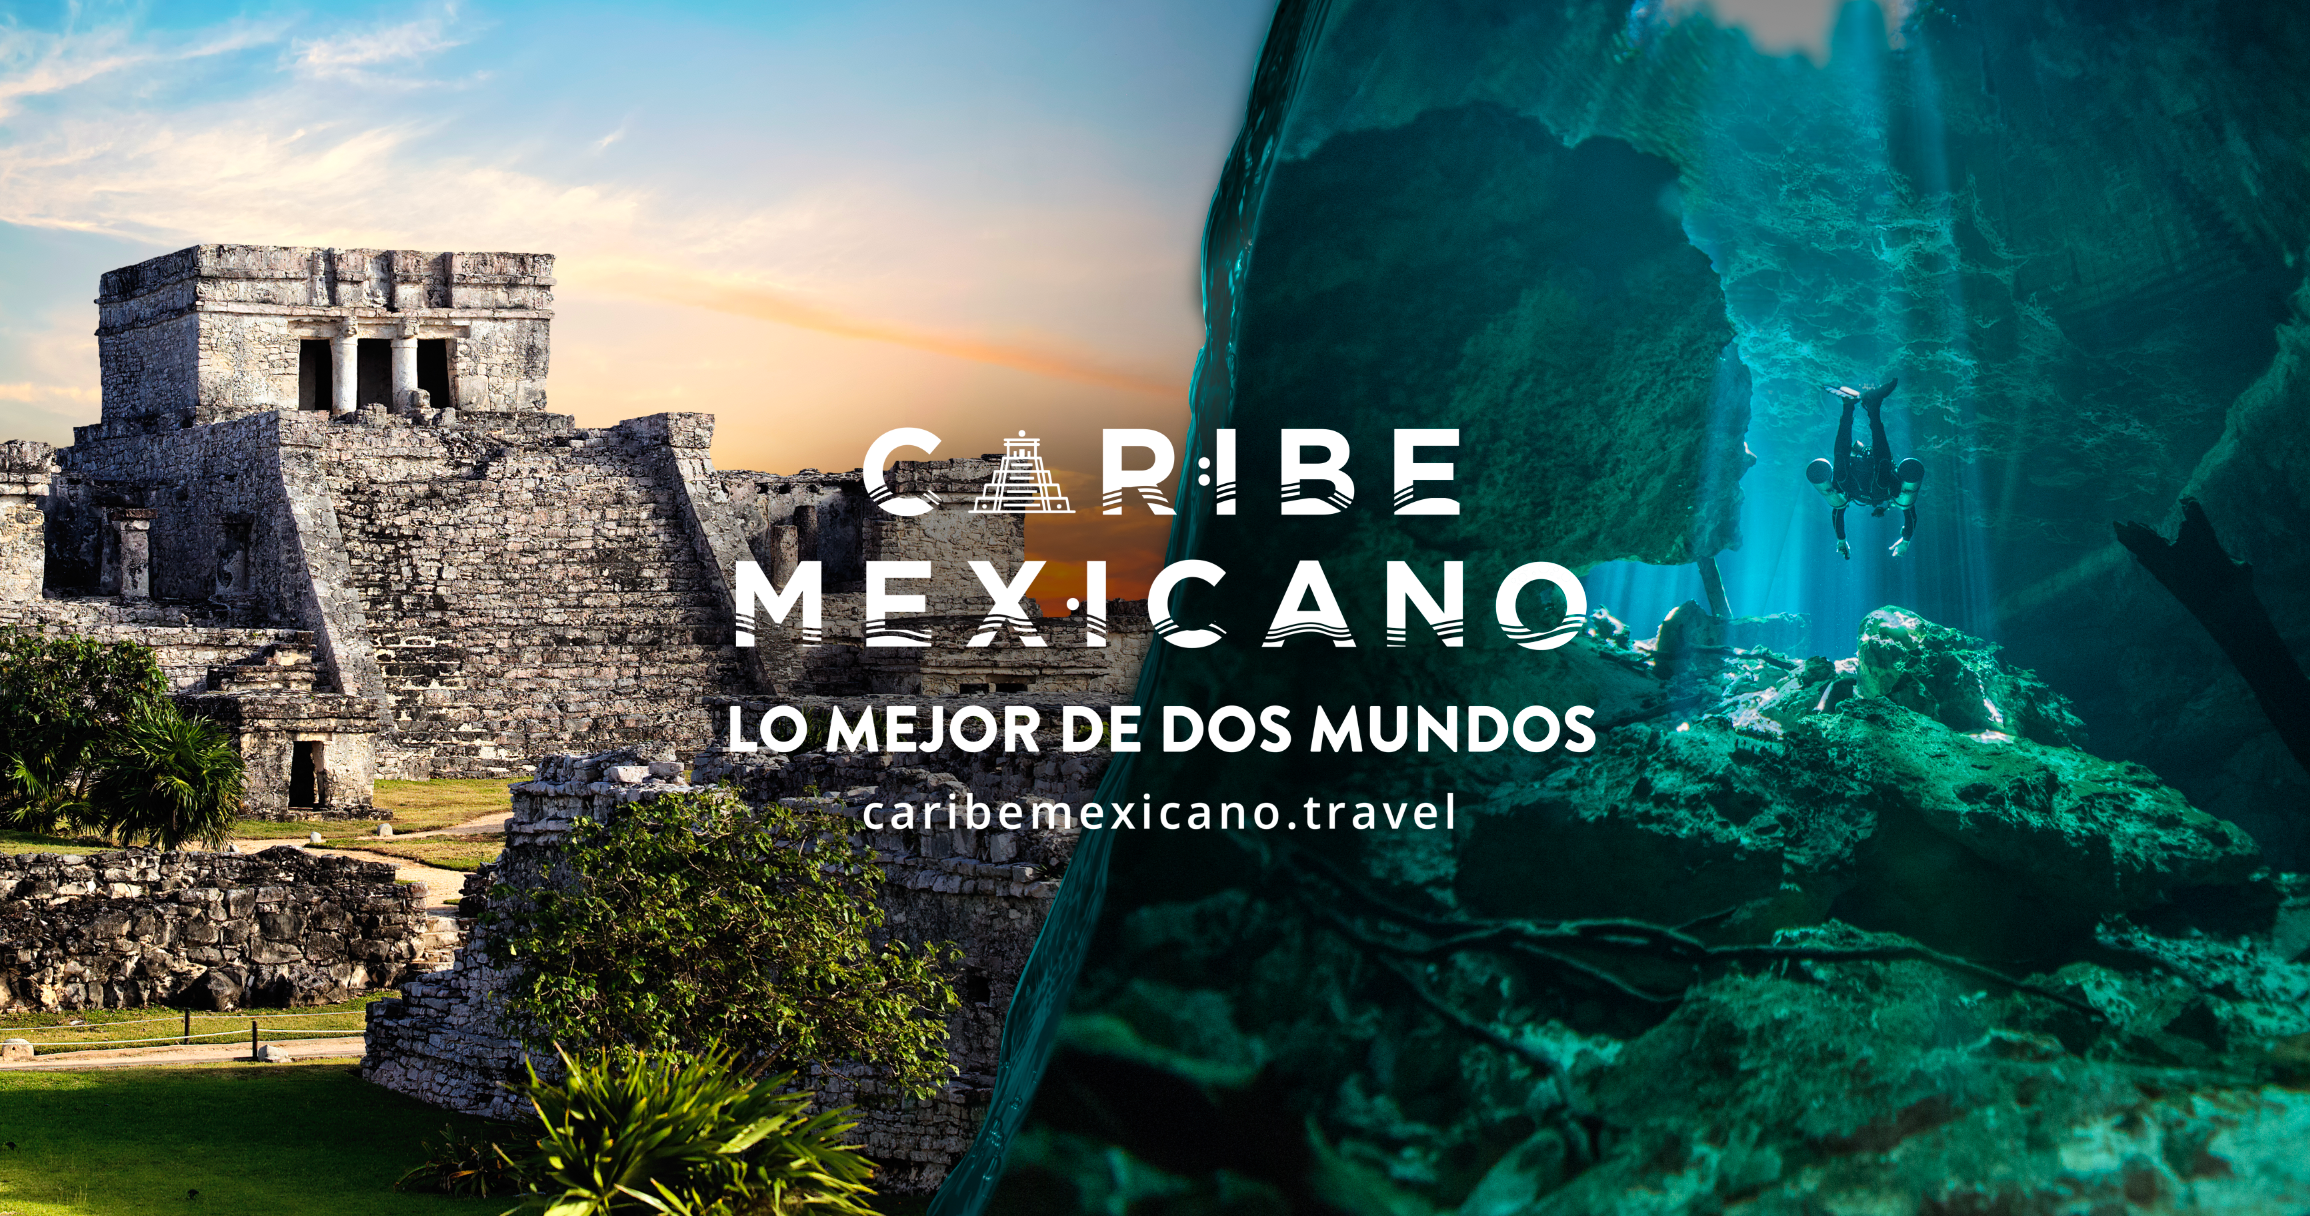 CARIBE MEXICANO, 1ro EN LATINOAMÉRICA CON SELLO DE SEGURIDAD GLOBAL